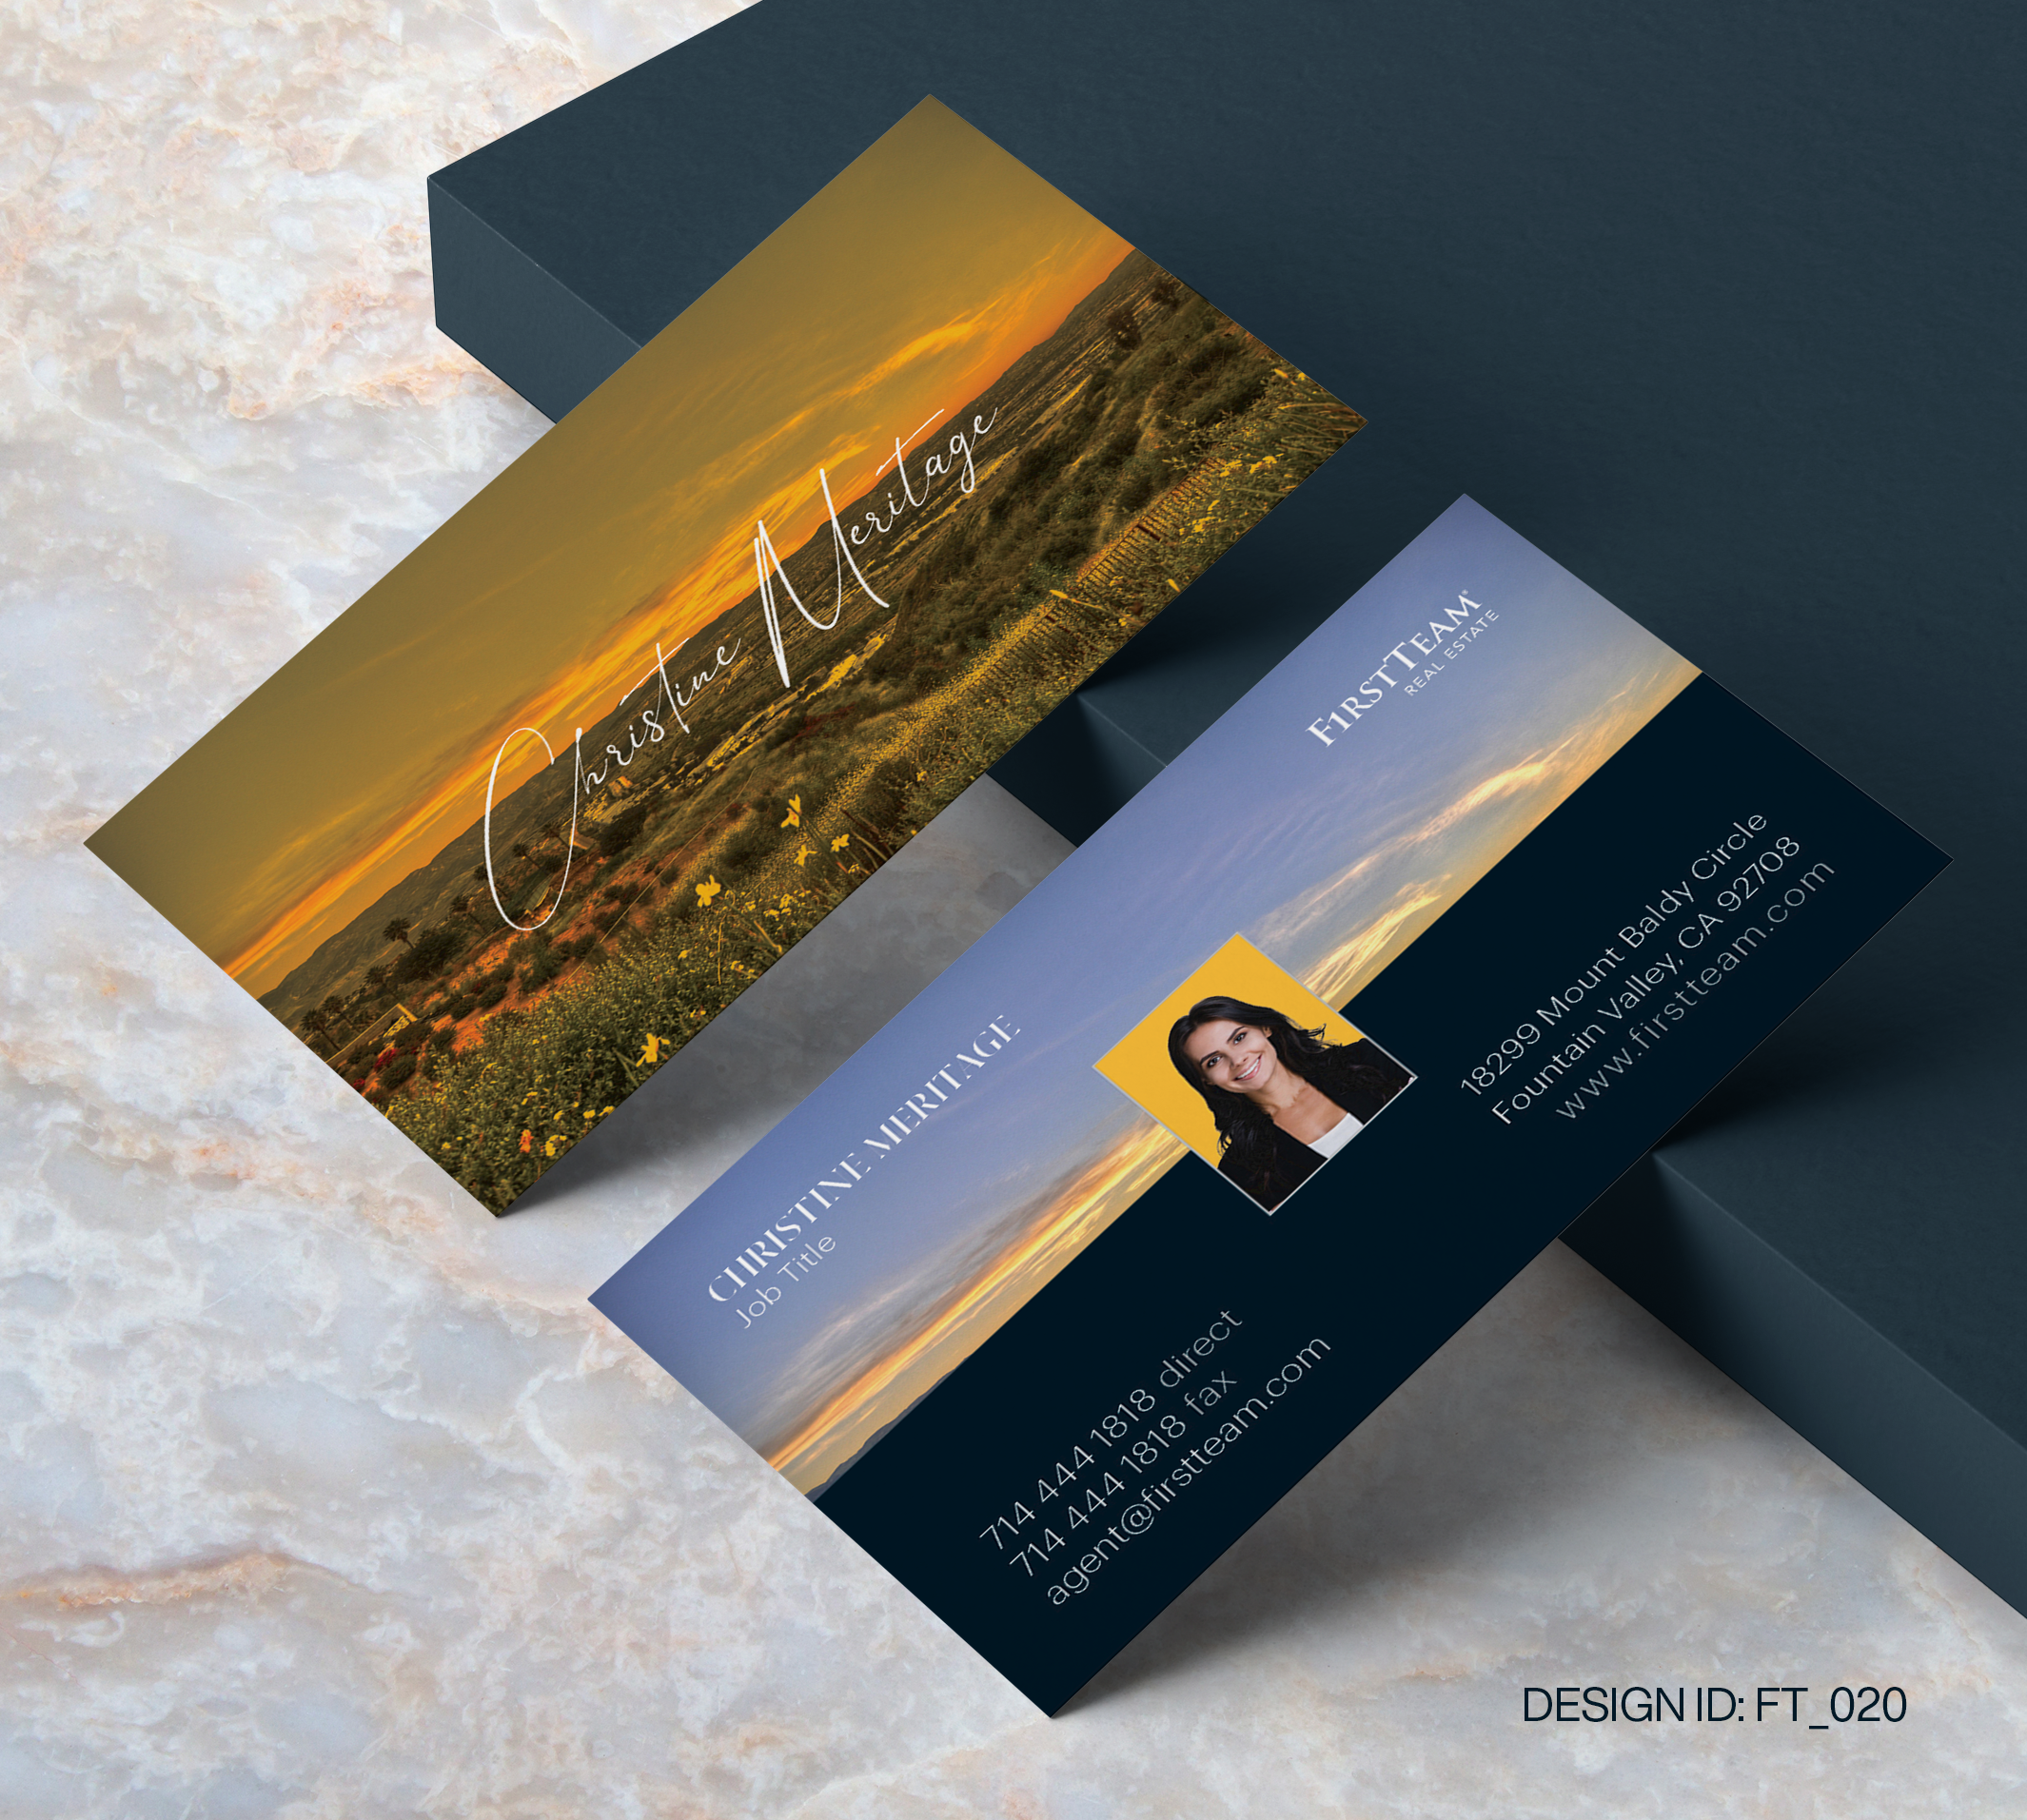 First Team Business Card Design  020